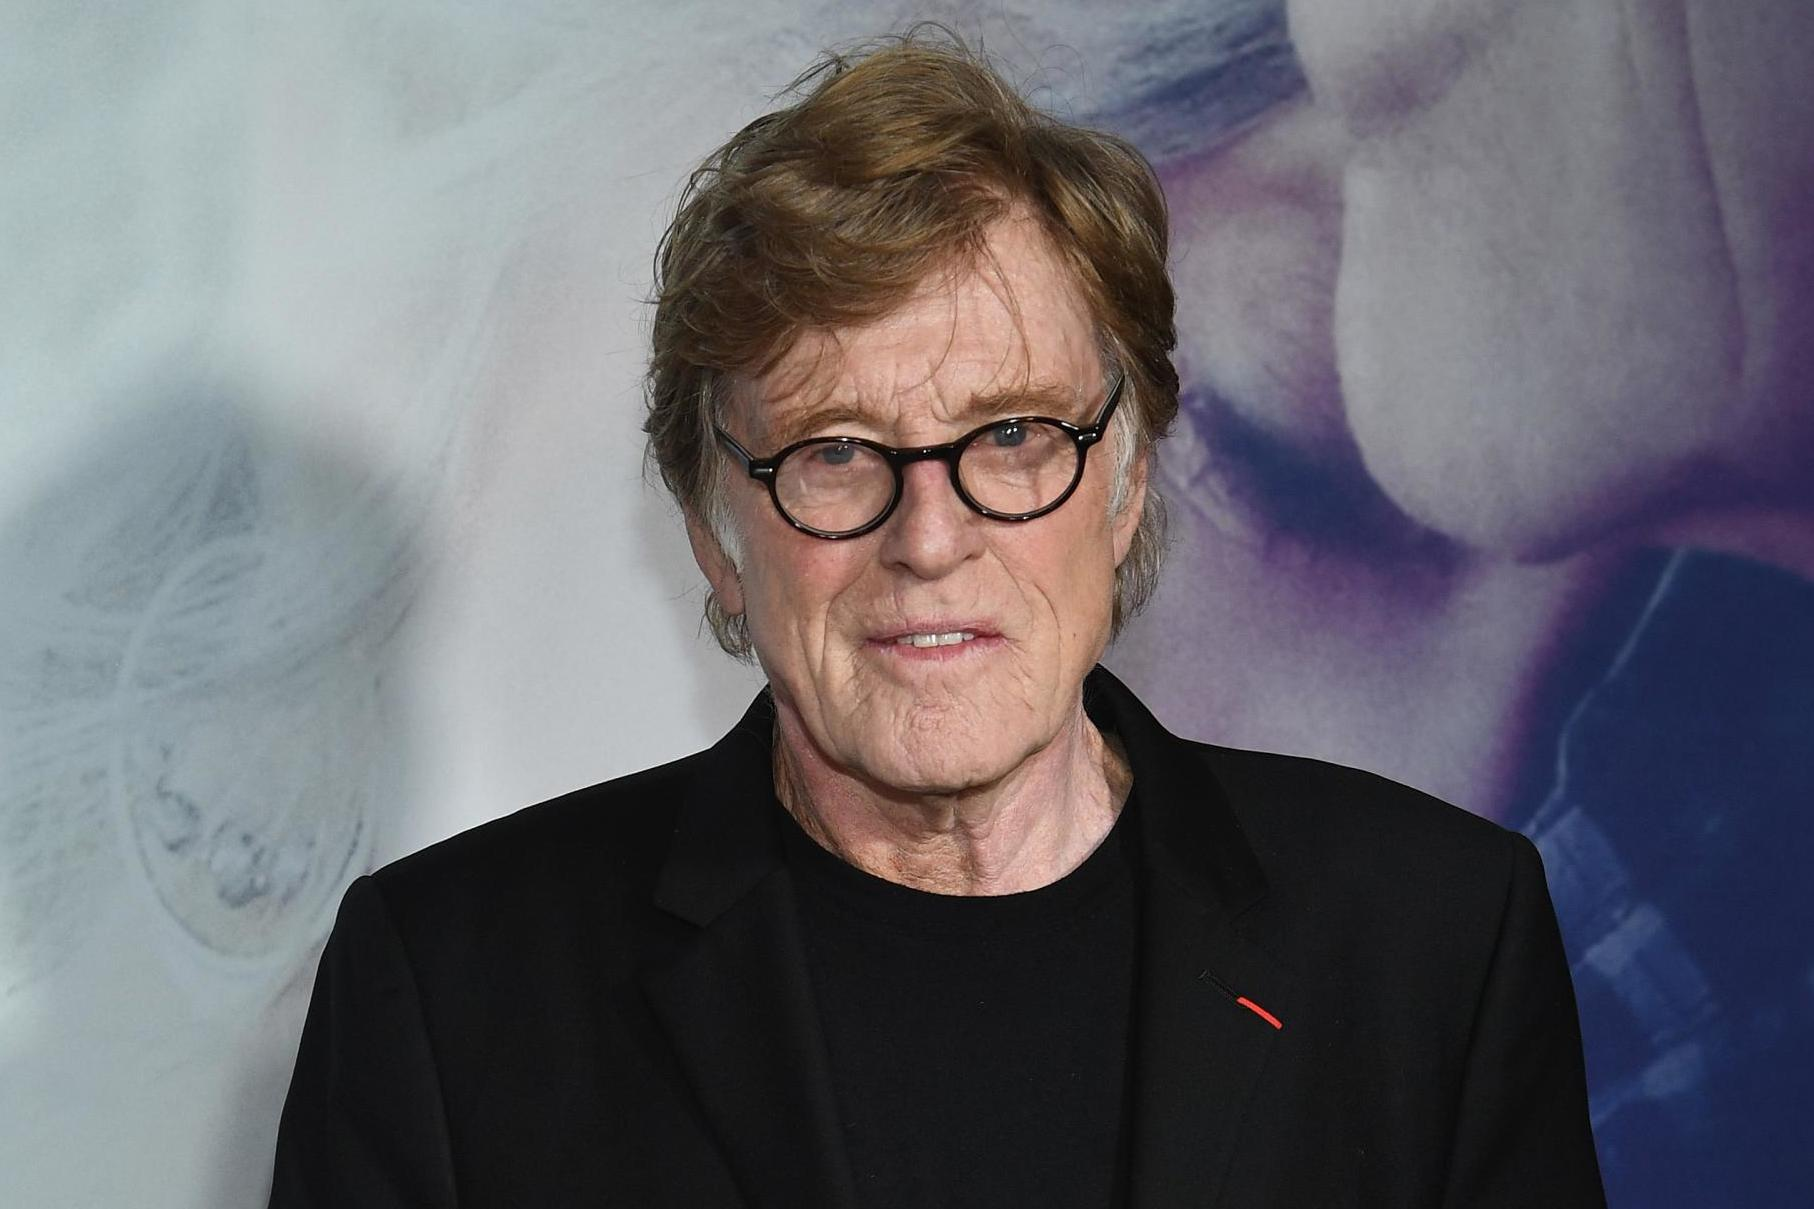 Robert Redford blasts Trump's response to coronavirus: 'He failed to understand scientific consensus' photo